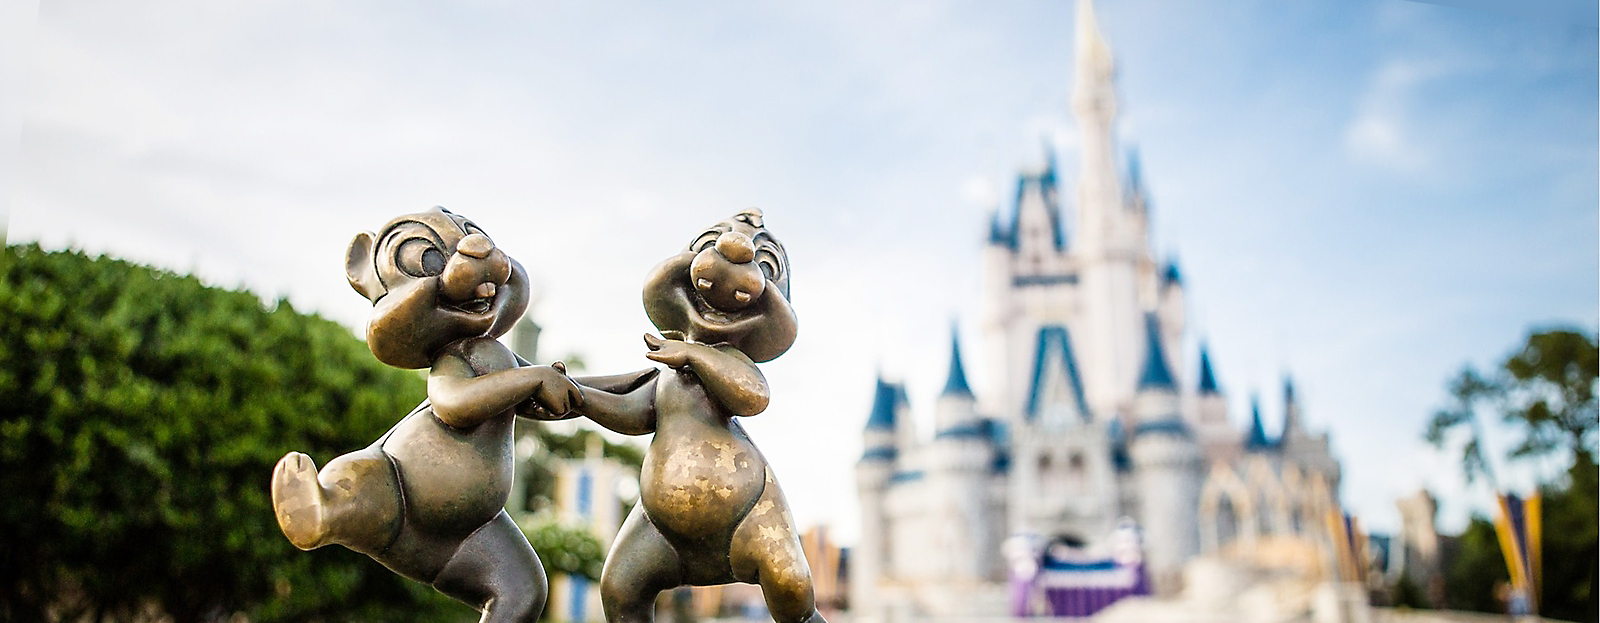 Chip and Dale bronze sculpt with Cinderella Castle in the background